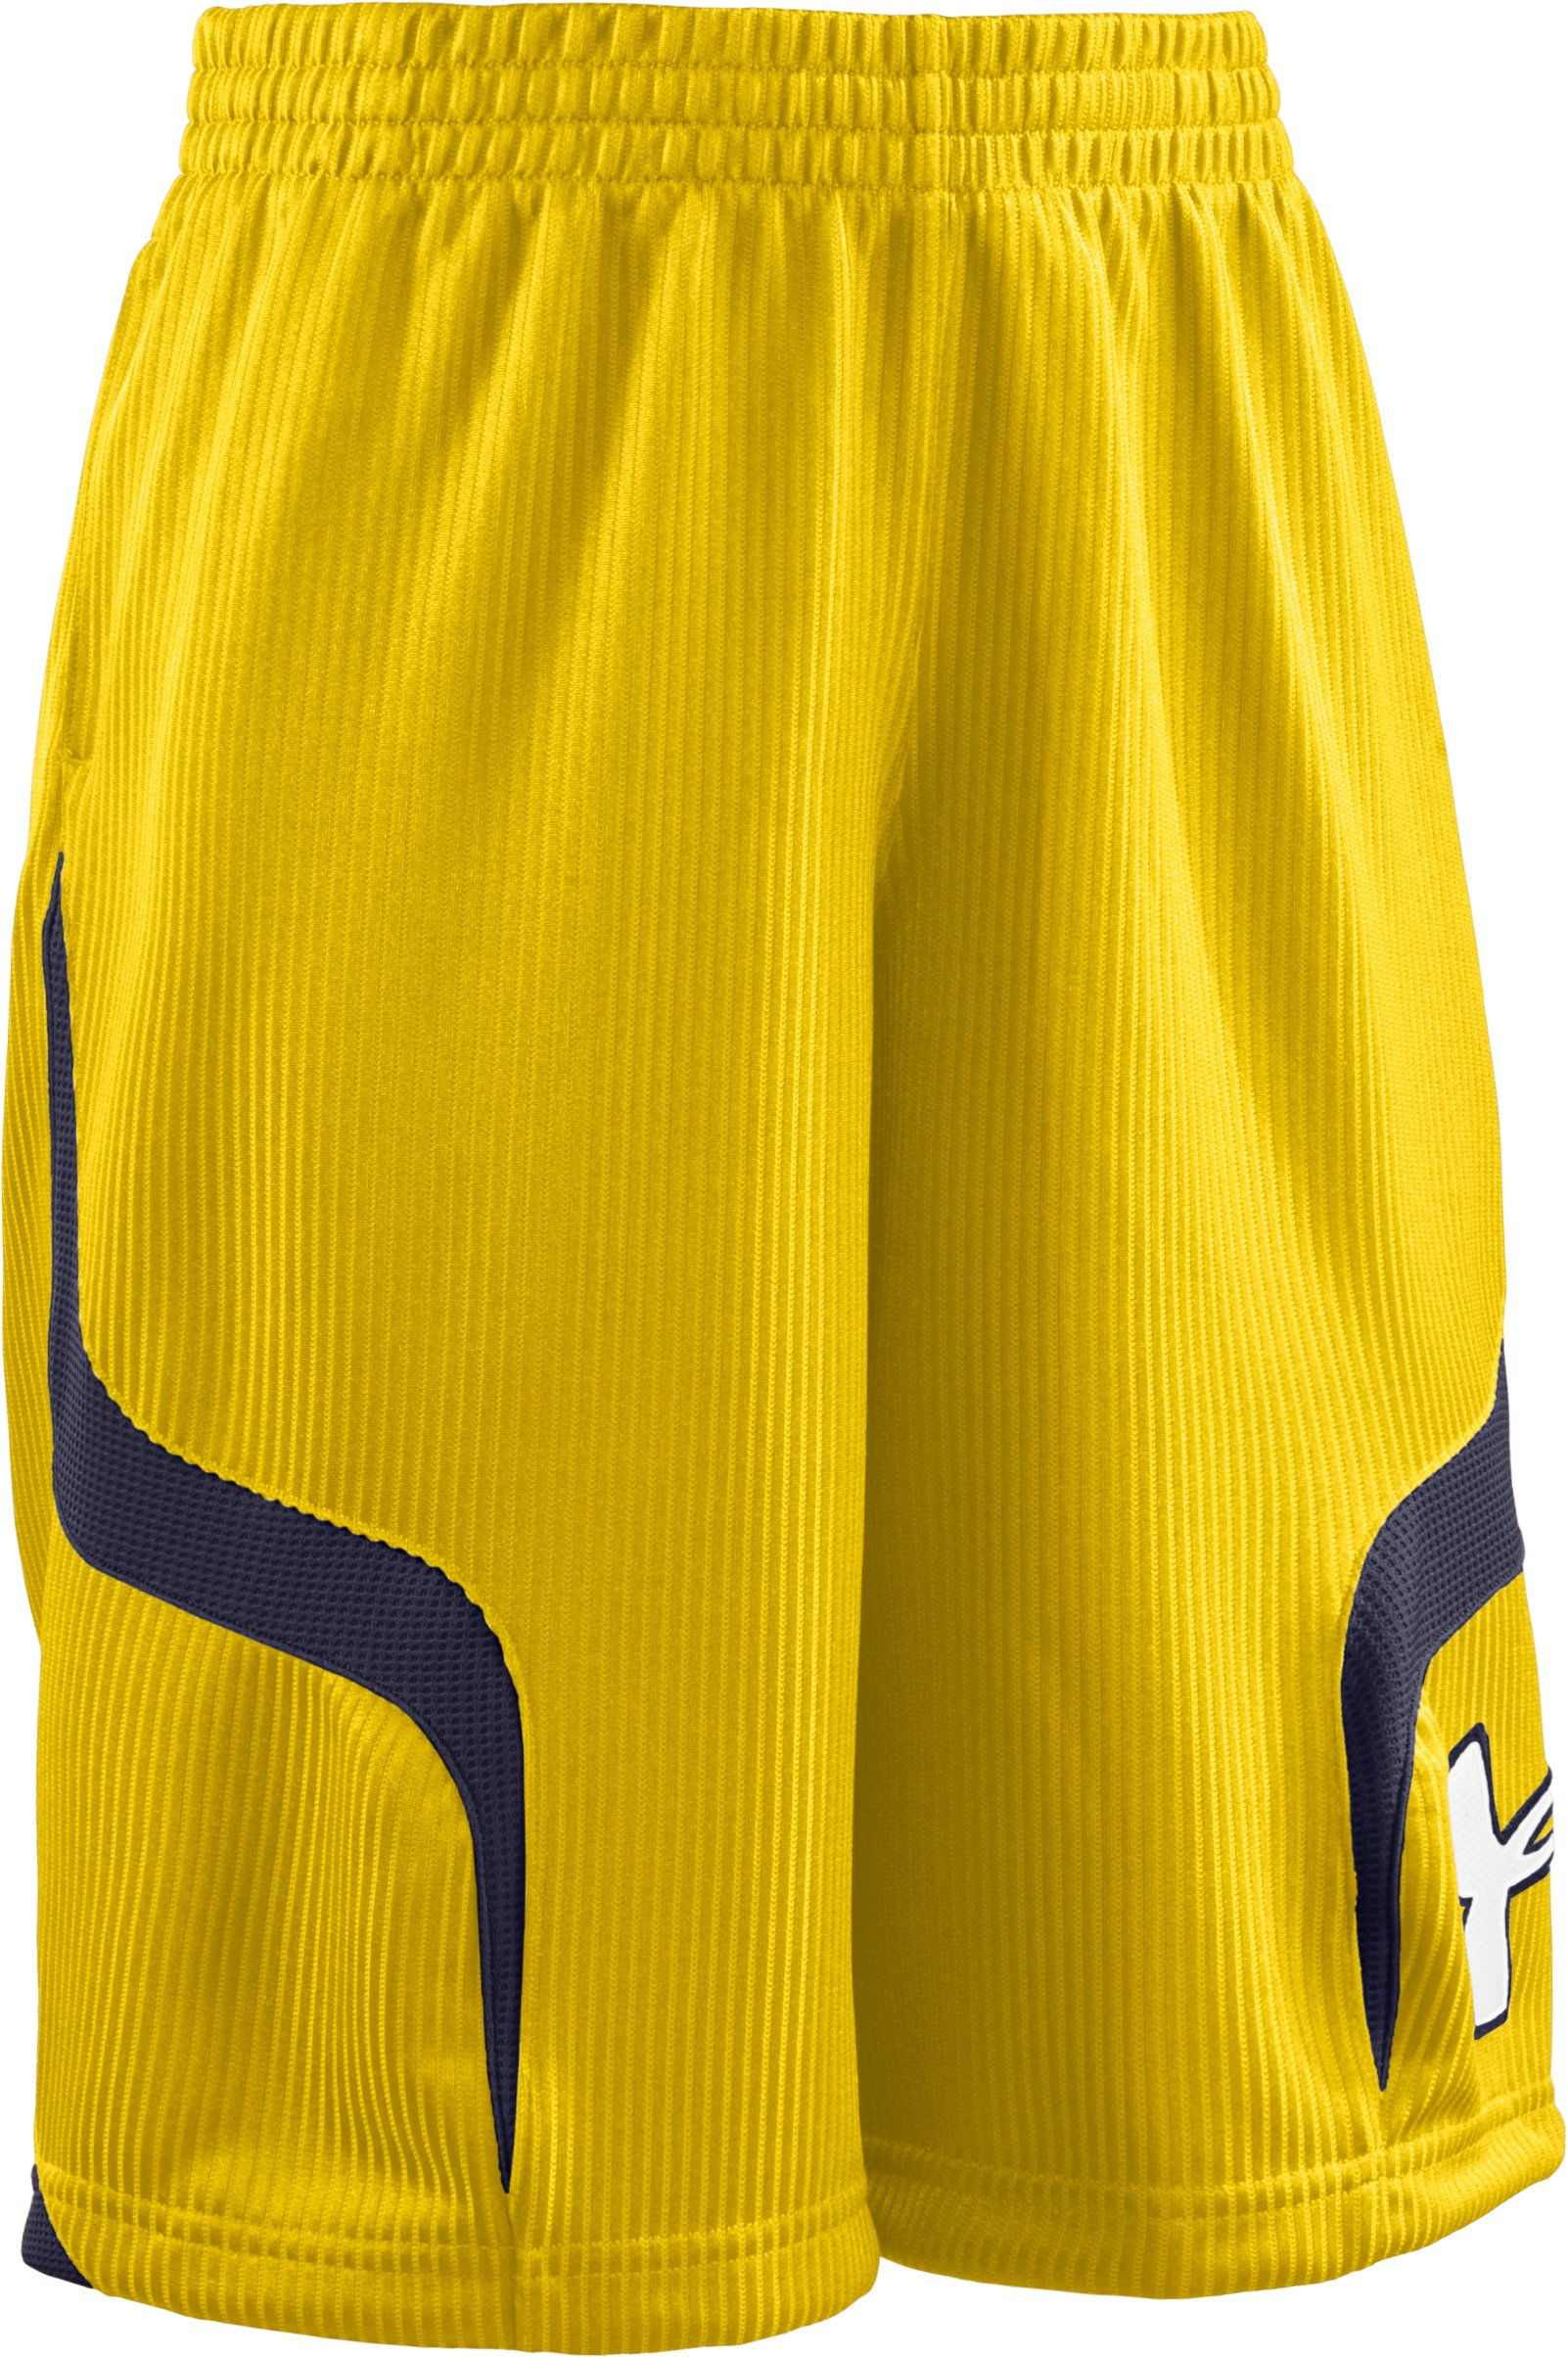 "Boys' Valkyrie 10"" Basketball Shorts, Taxi, zoomed image"